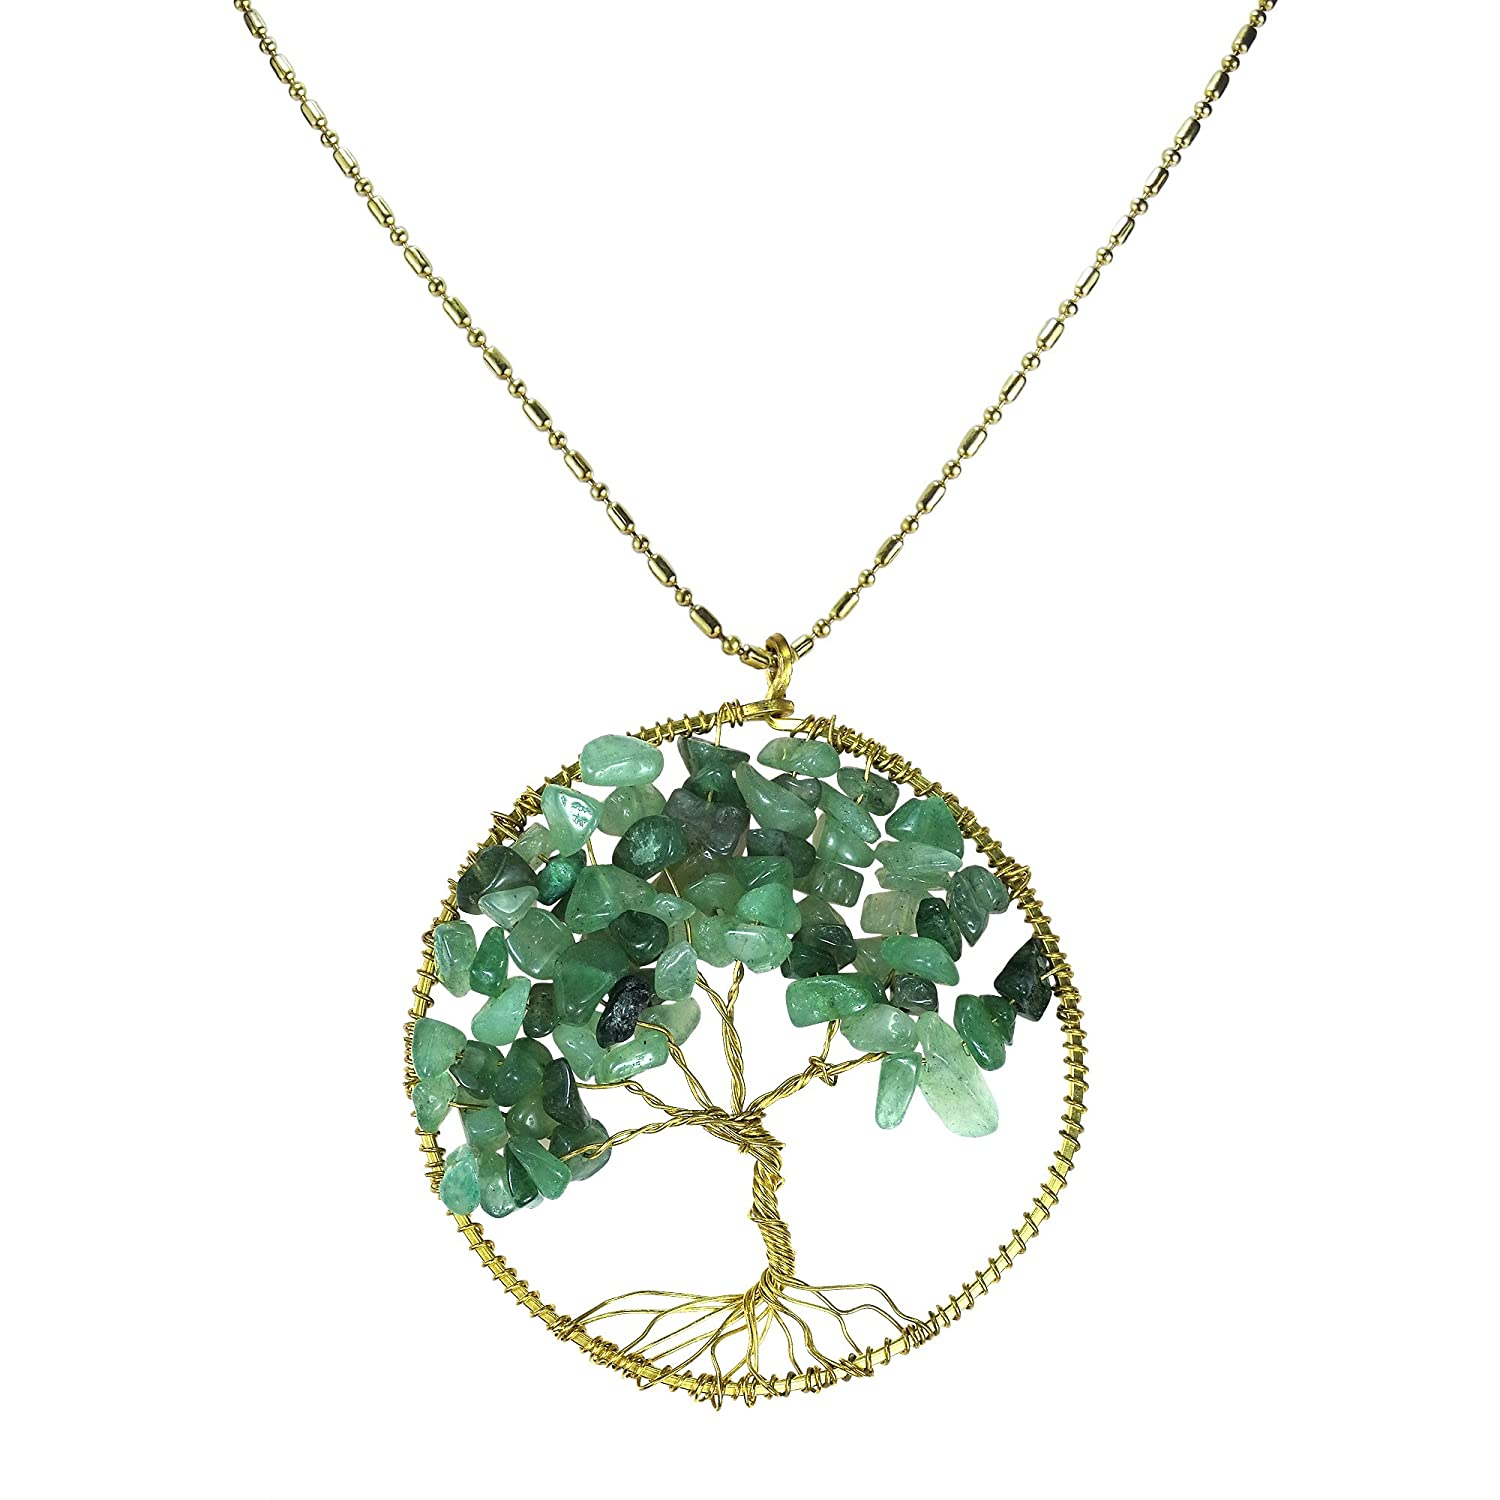 chic life of tree necklace seek products for handmade